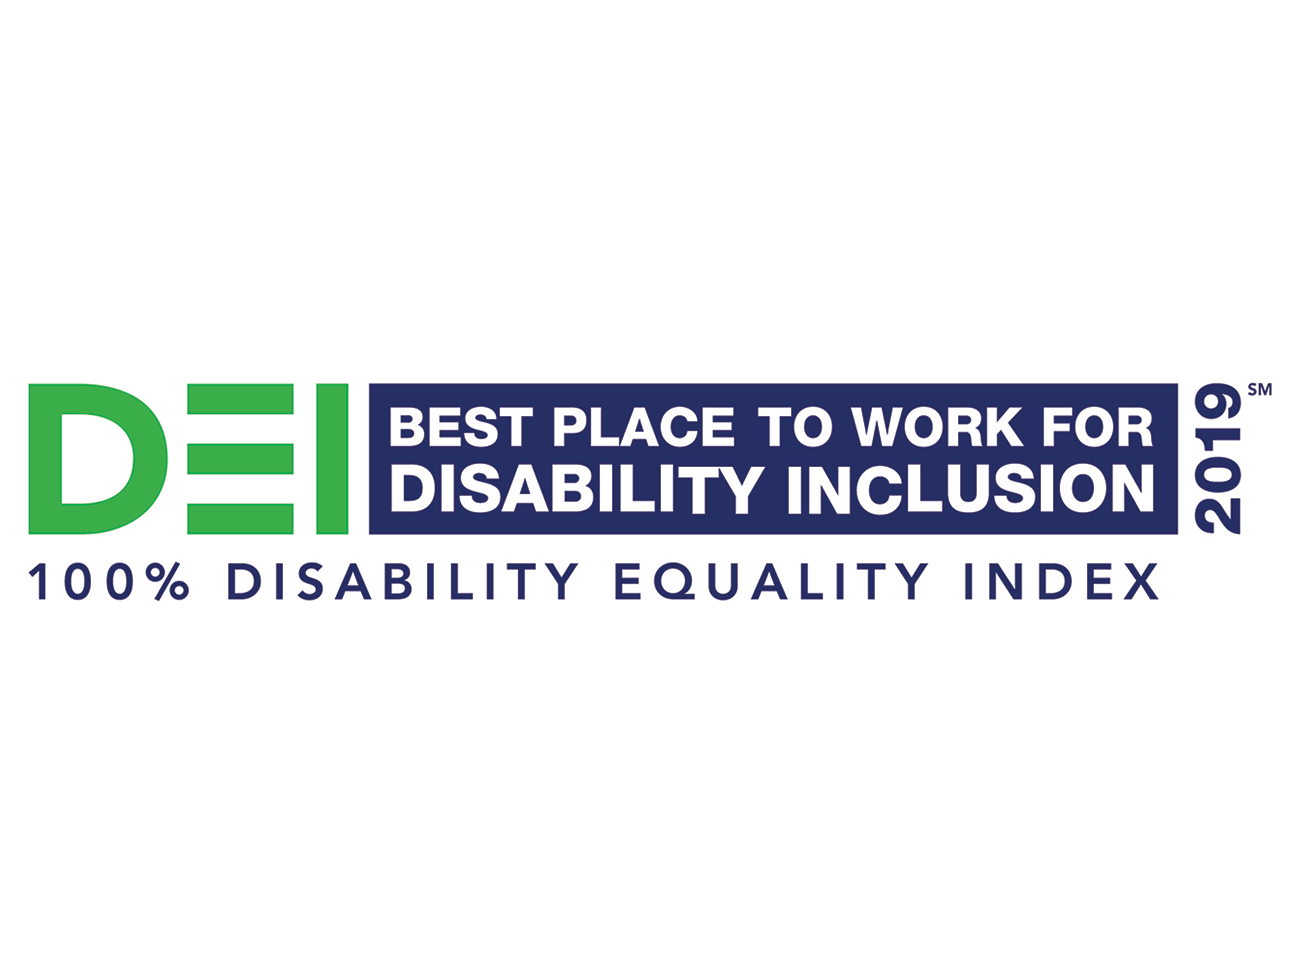 Disability Equality Index Best Place to Work for Disability Inclusion 2019